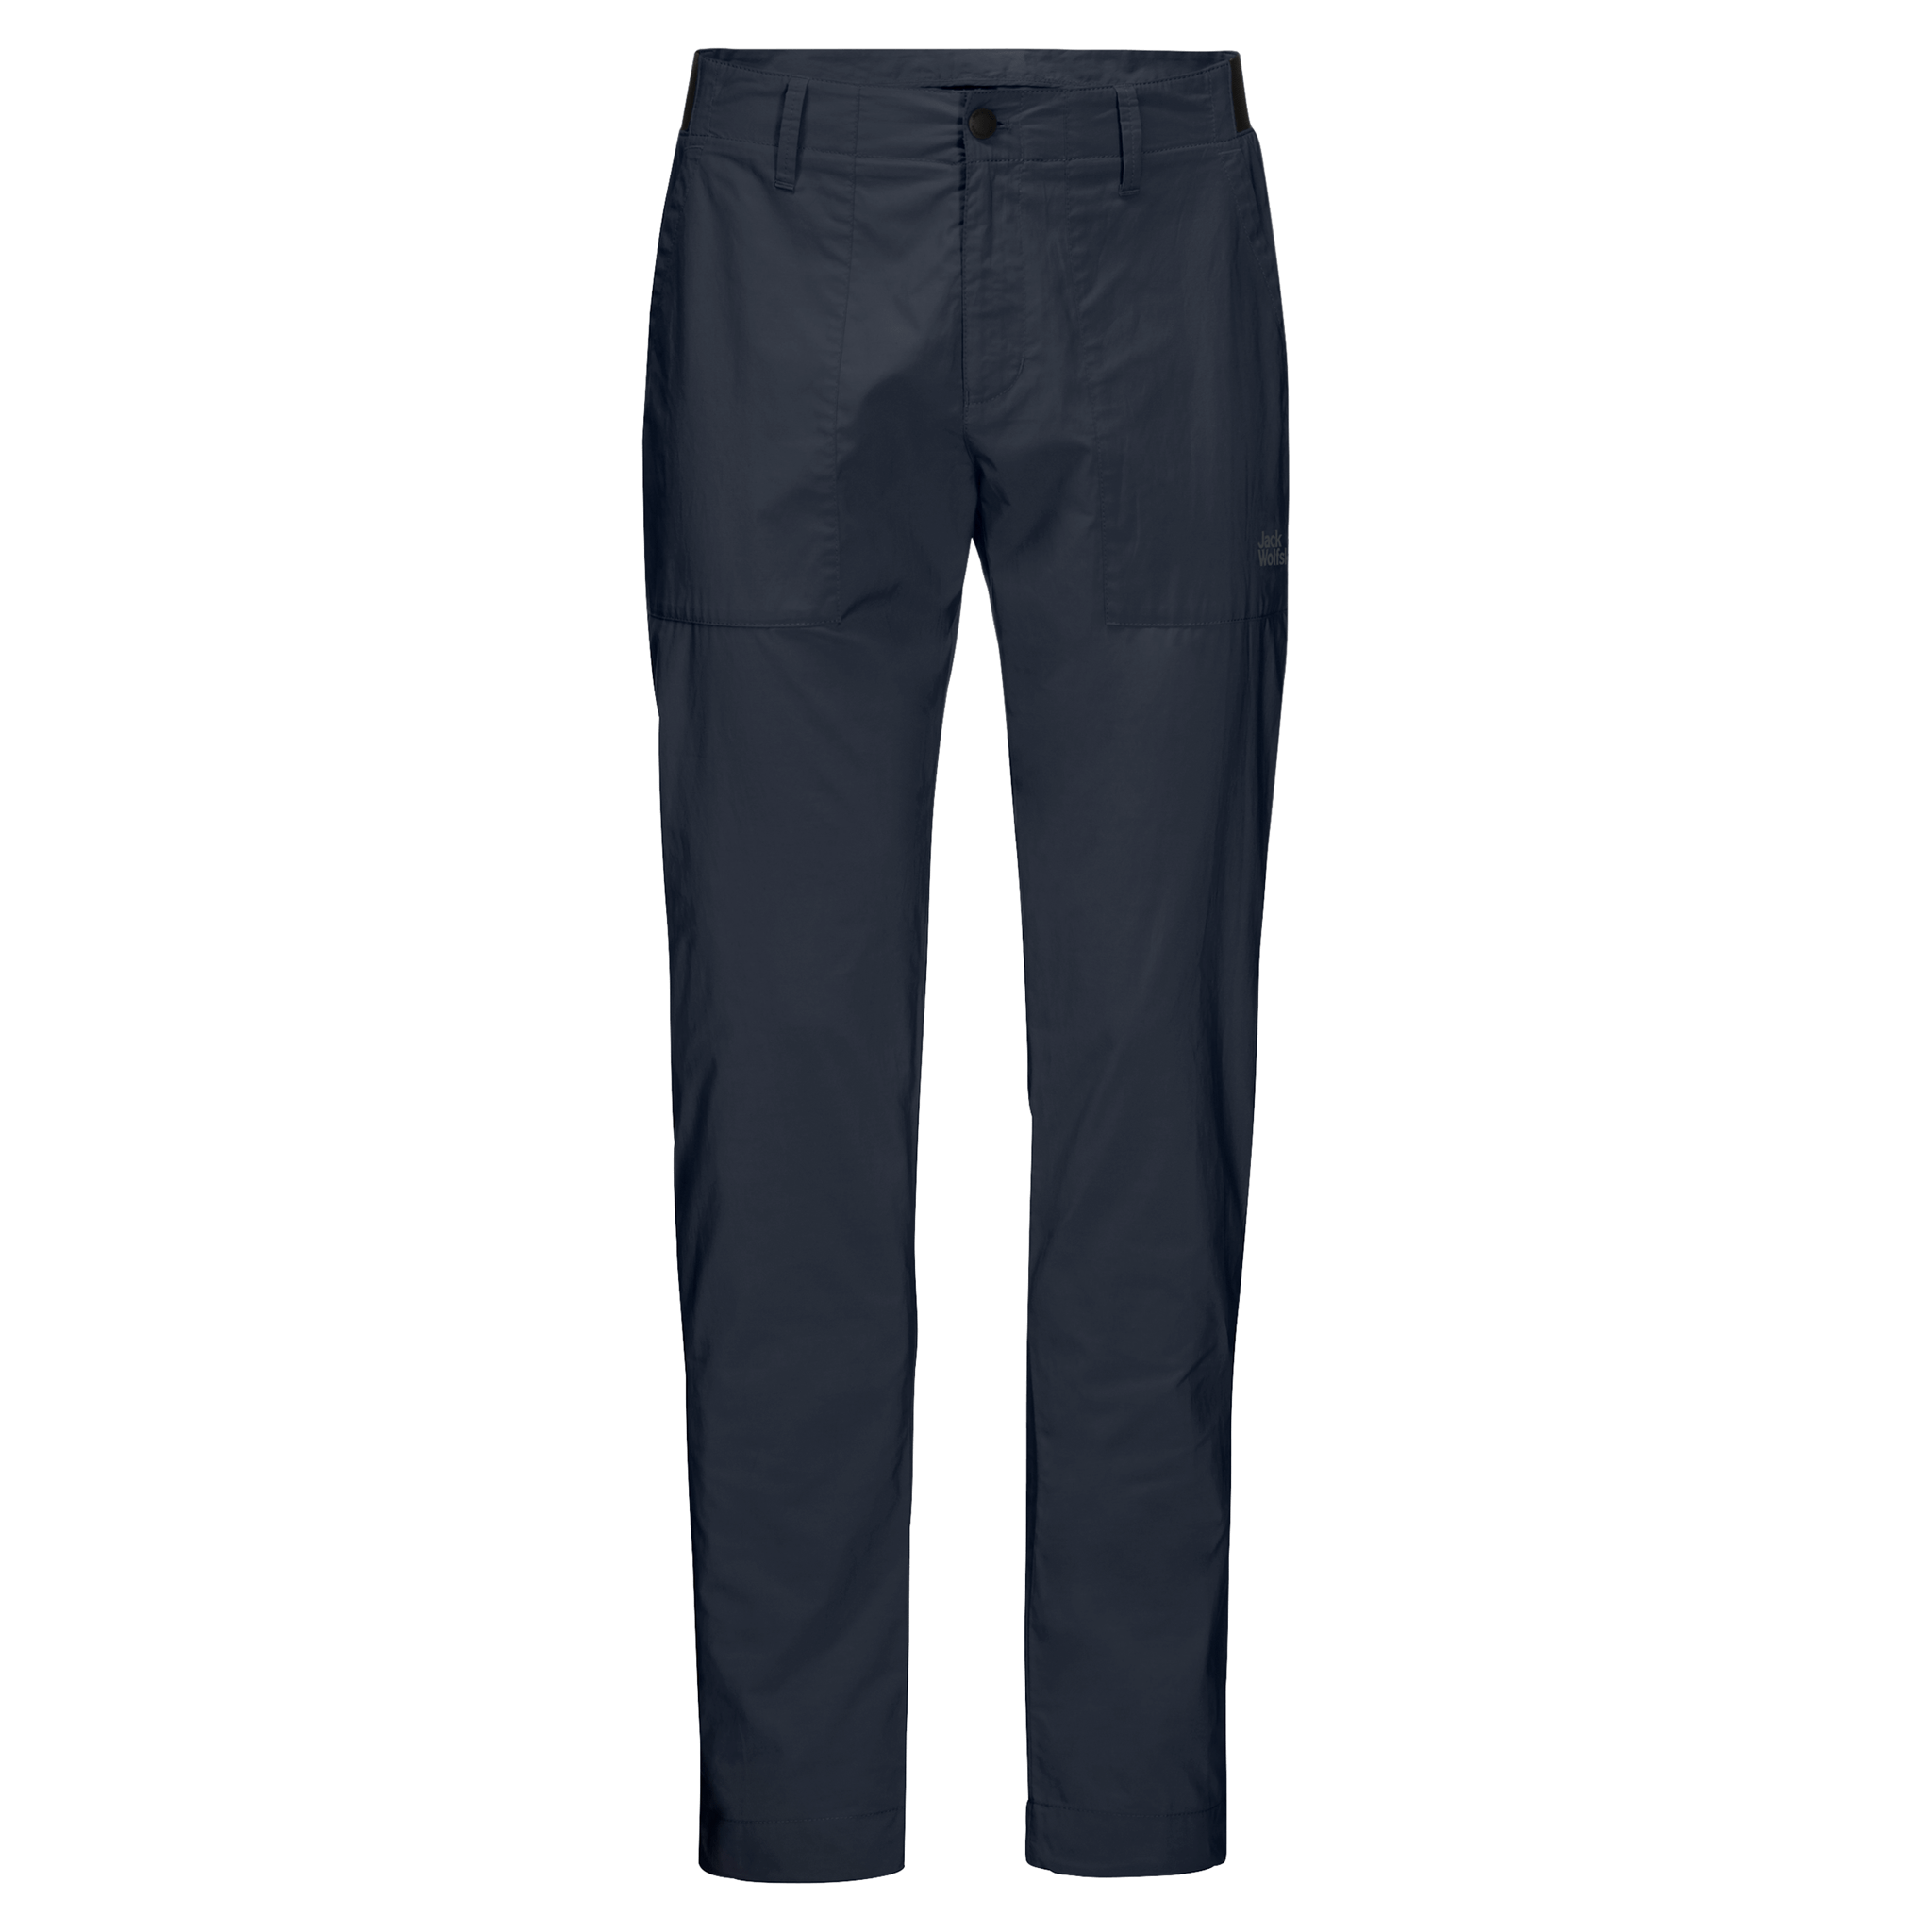 Night Blue Leisure Pants Men